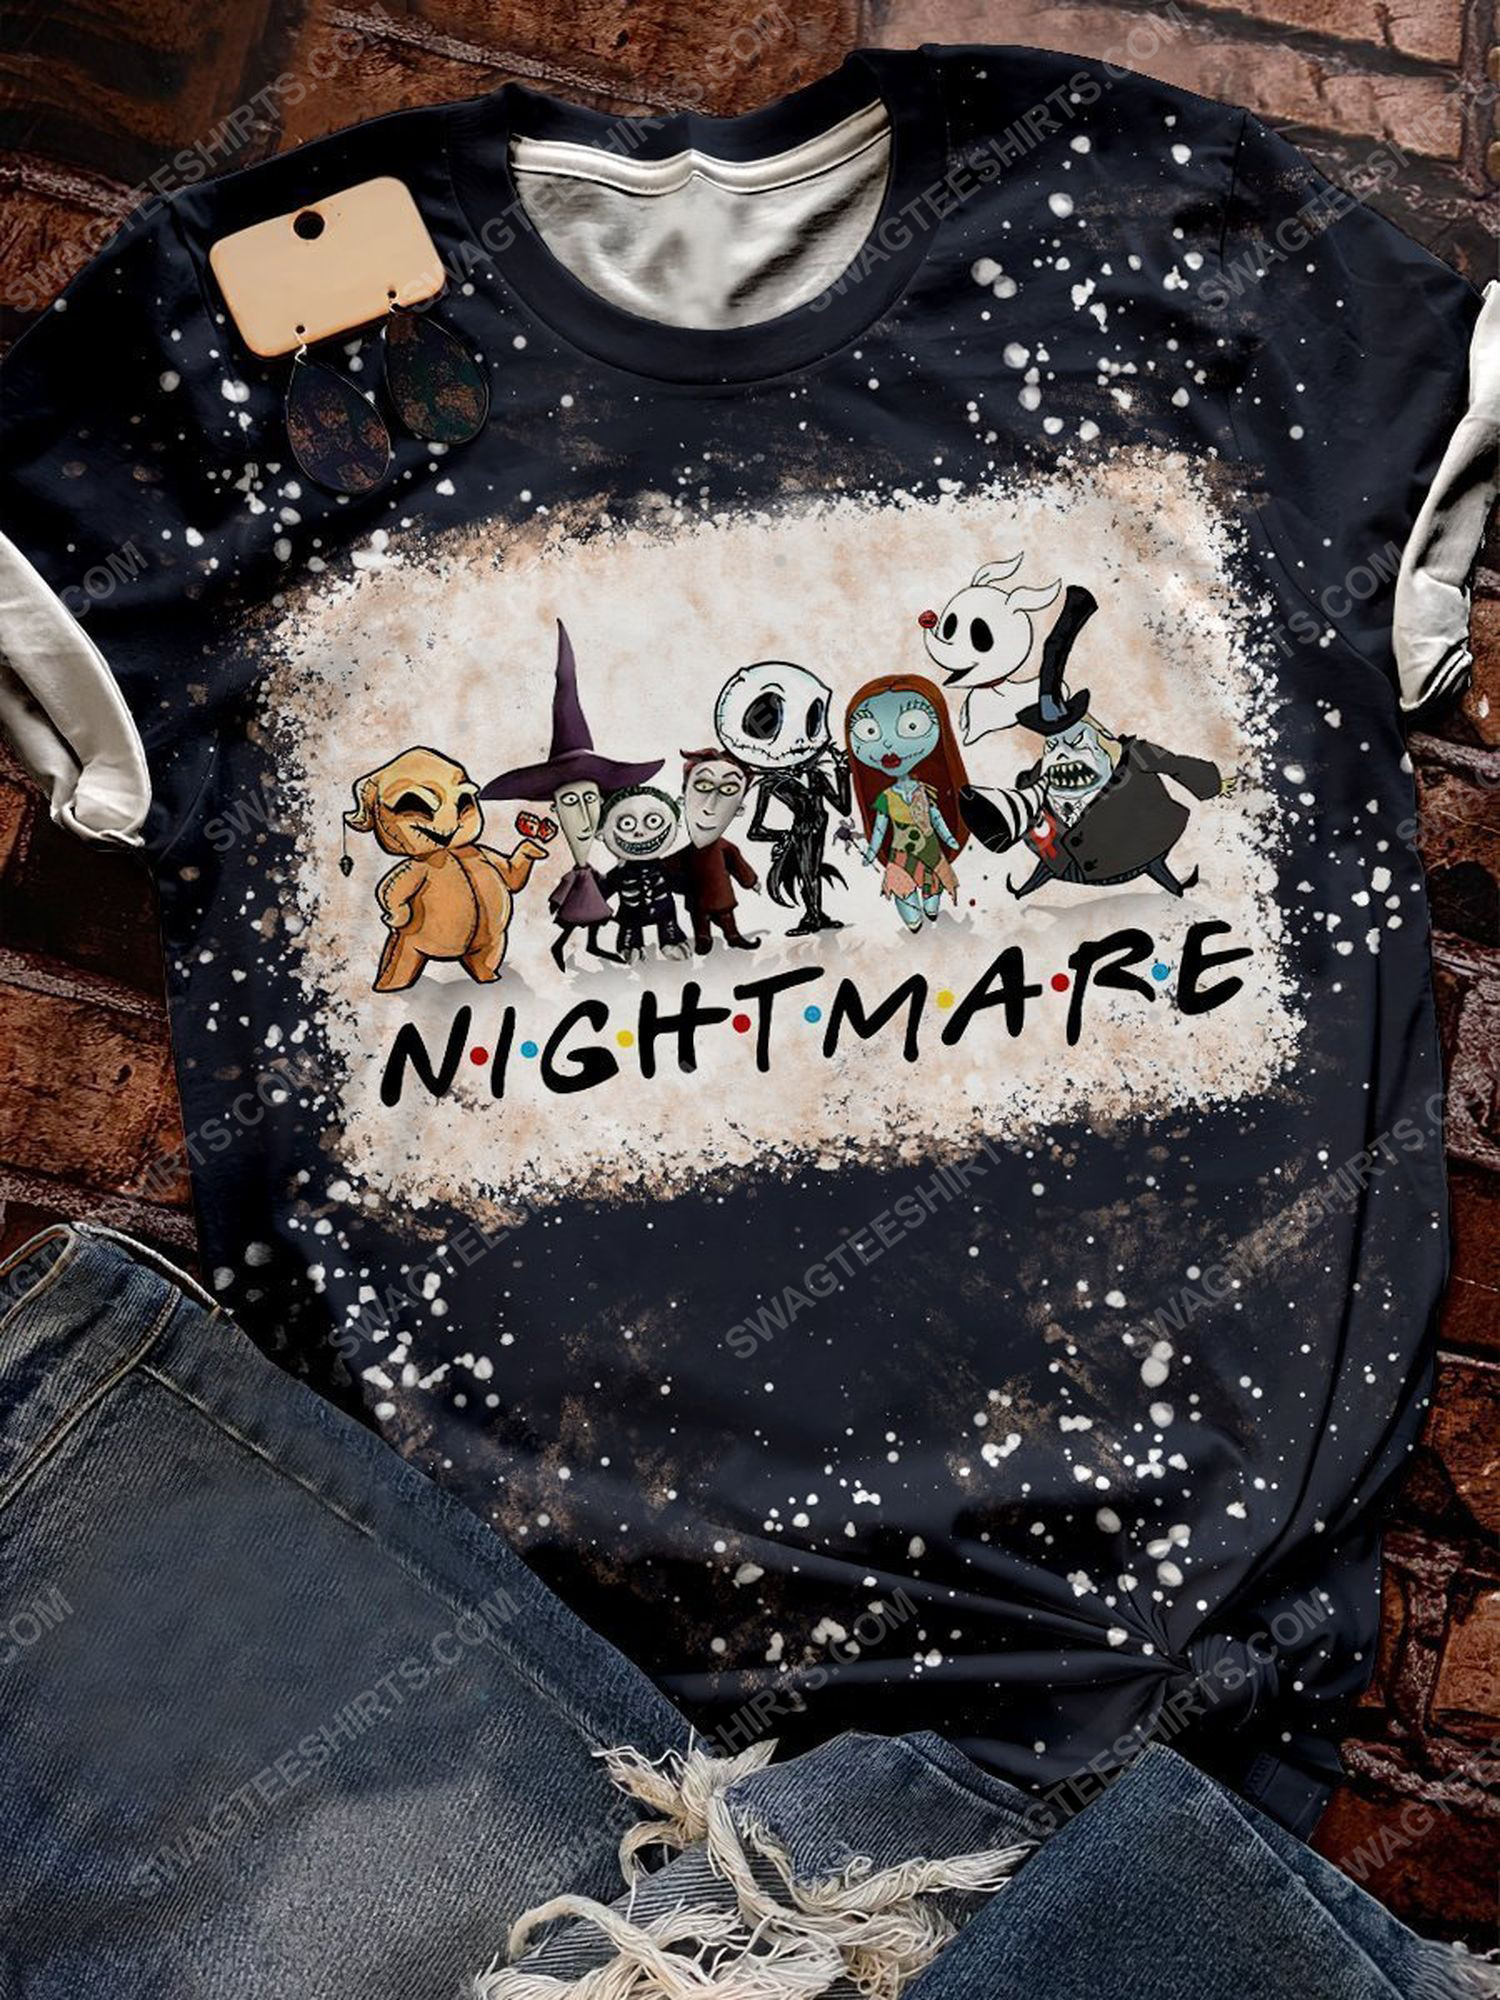 The nightmare before christmas bleached shirt 1